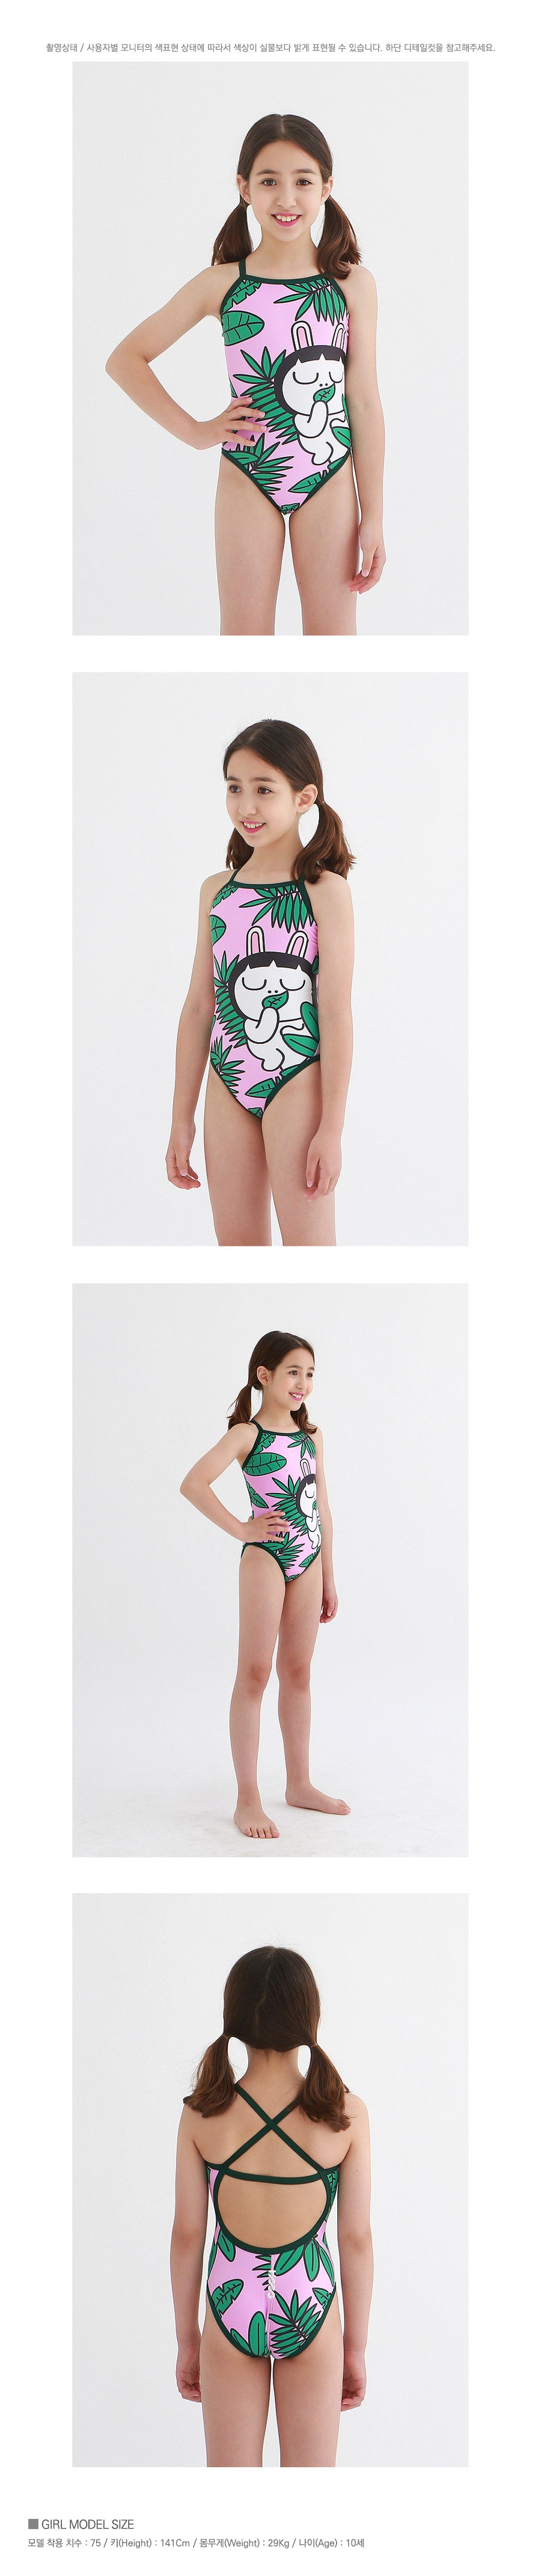 Discover our unique selection of Girls' Swimwear within our Swimming department.